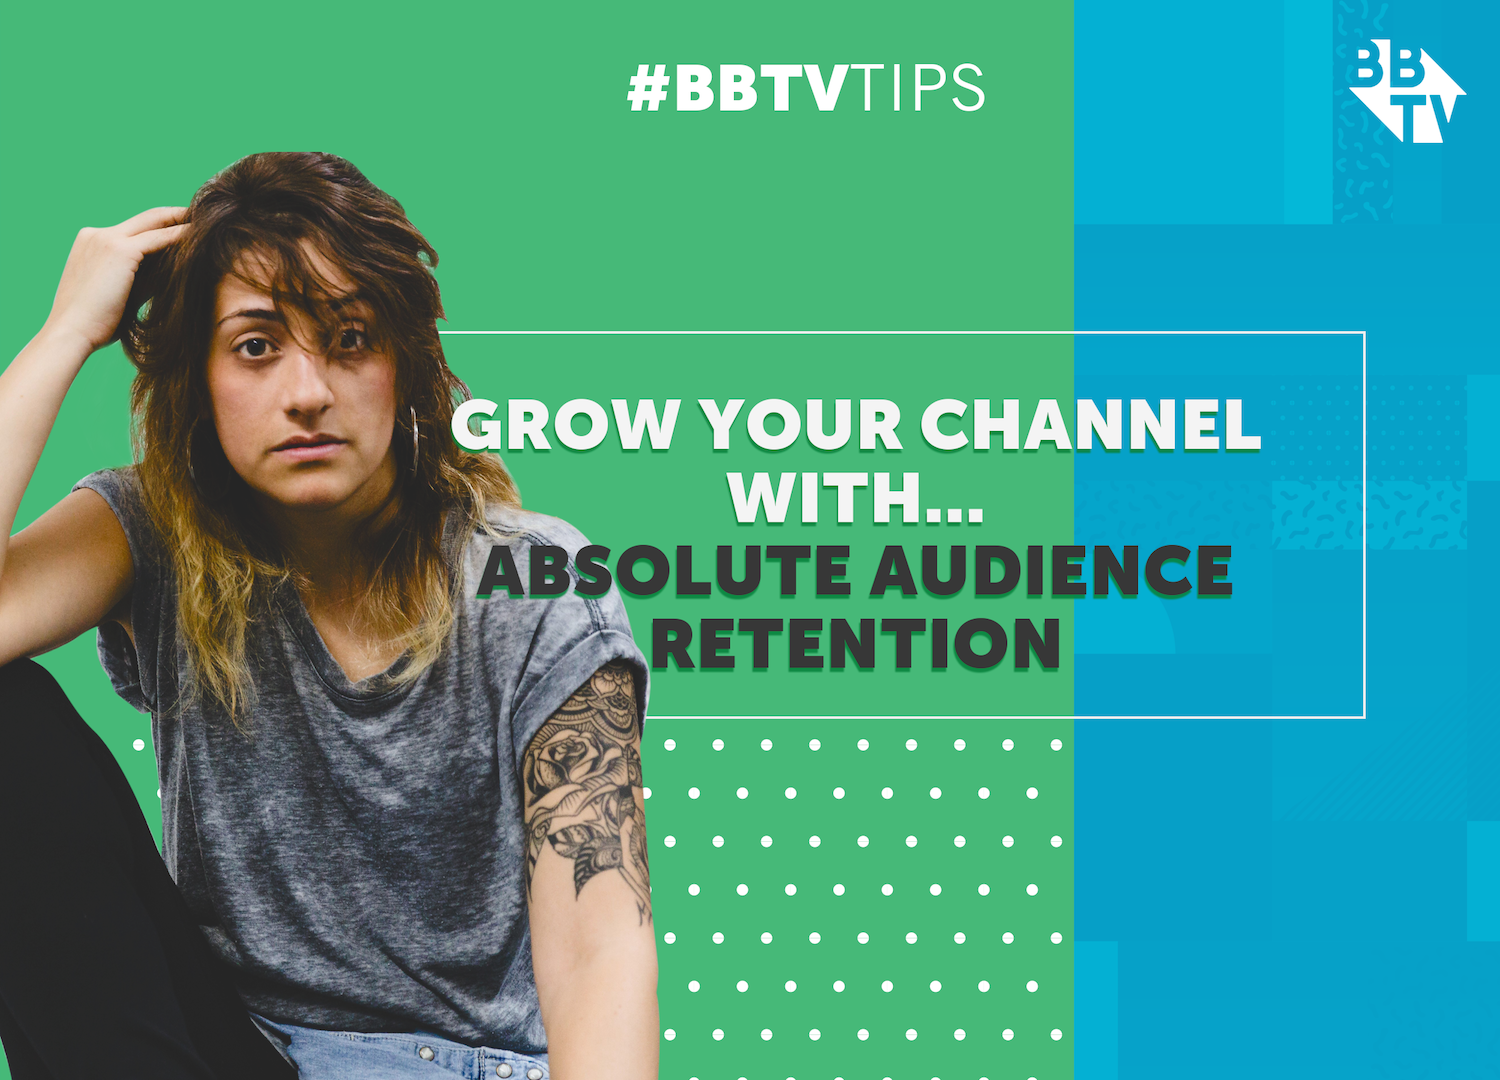 BBTV Tips audience retention Grow Your Channel With...Absolute Audience Retention